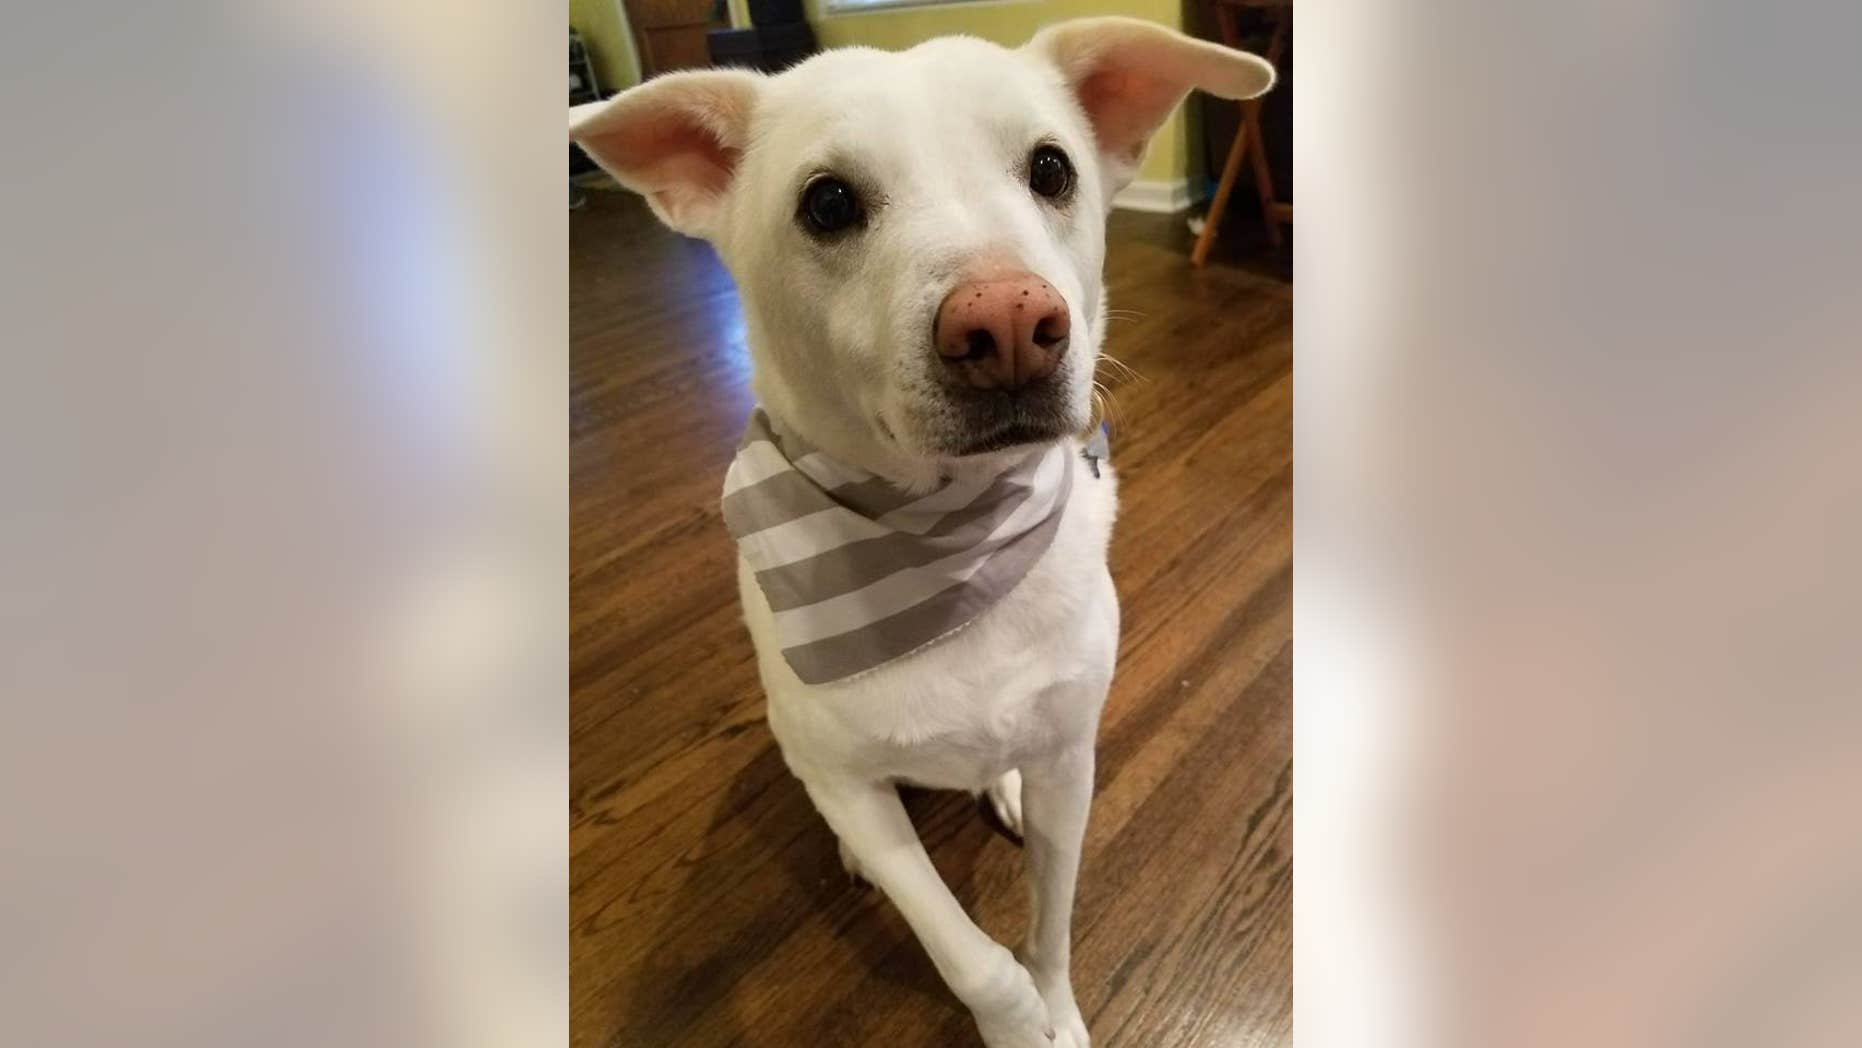 Moses, a lab/shepherd mix, was mistakenly euthanized this week, his family says.